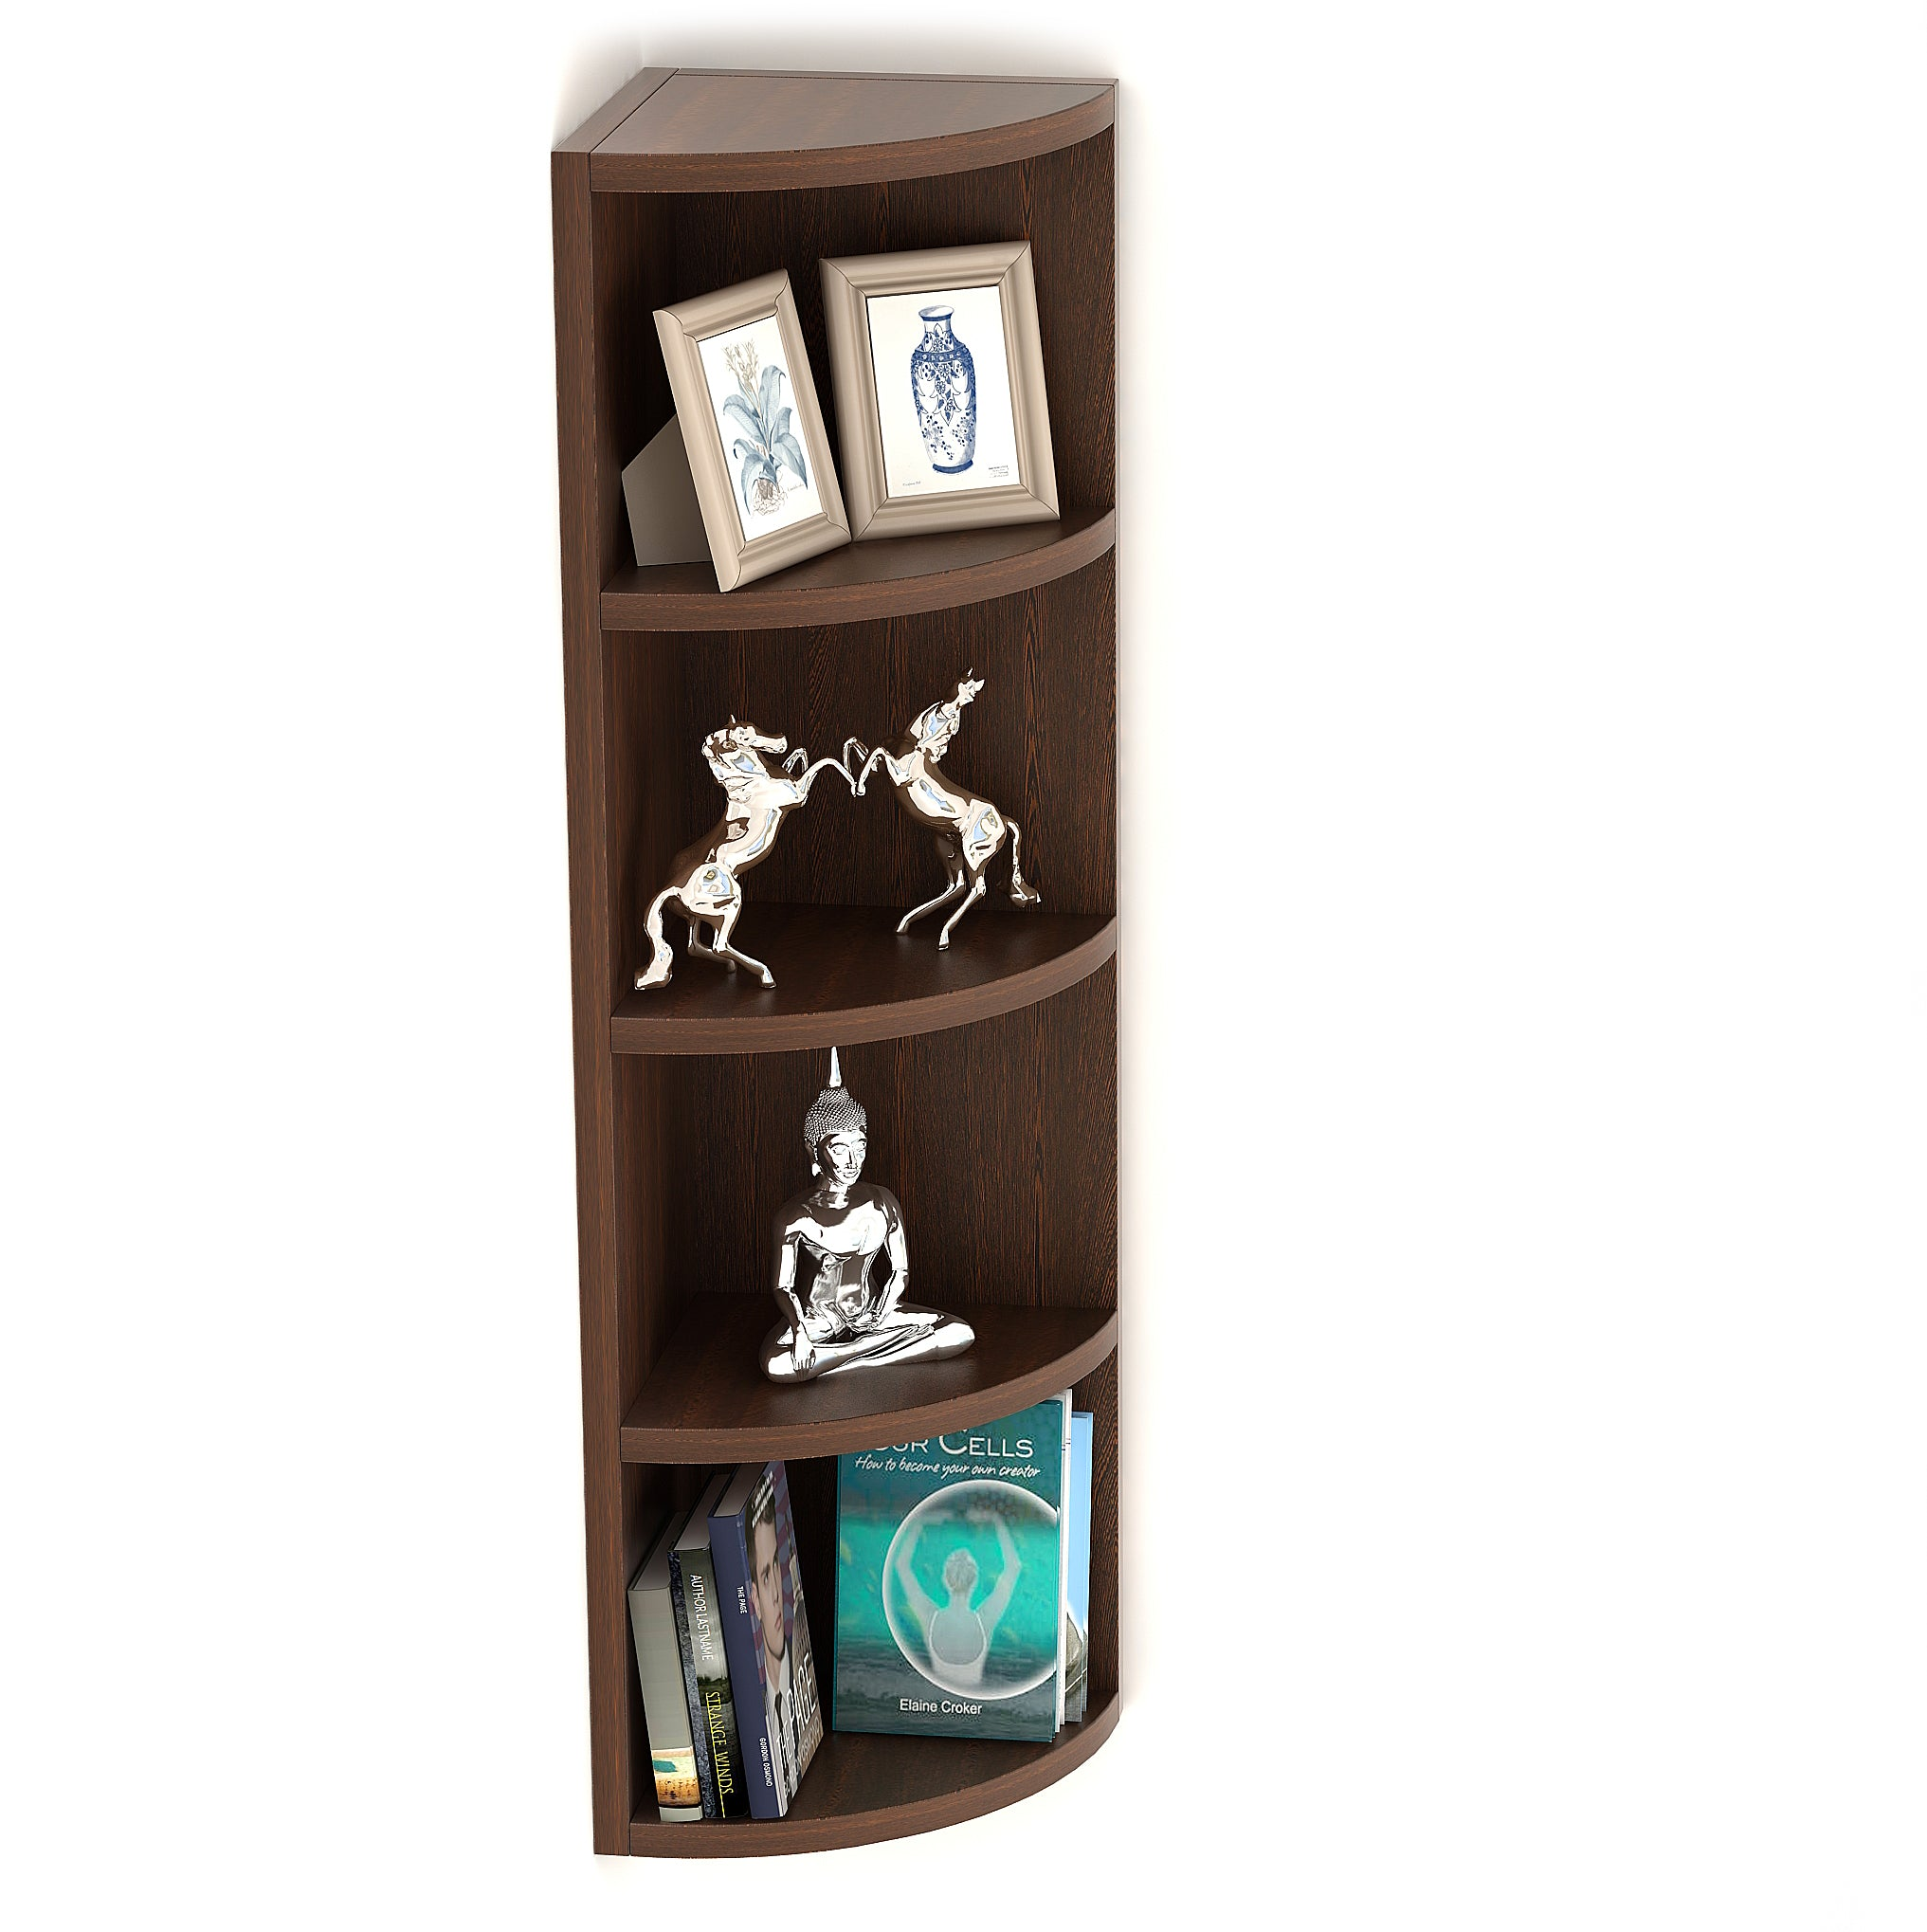 Bluewud Adora Corner Wall Decor Shelf Wall Display Rack 5 Shelves